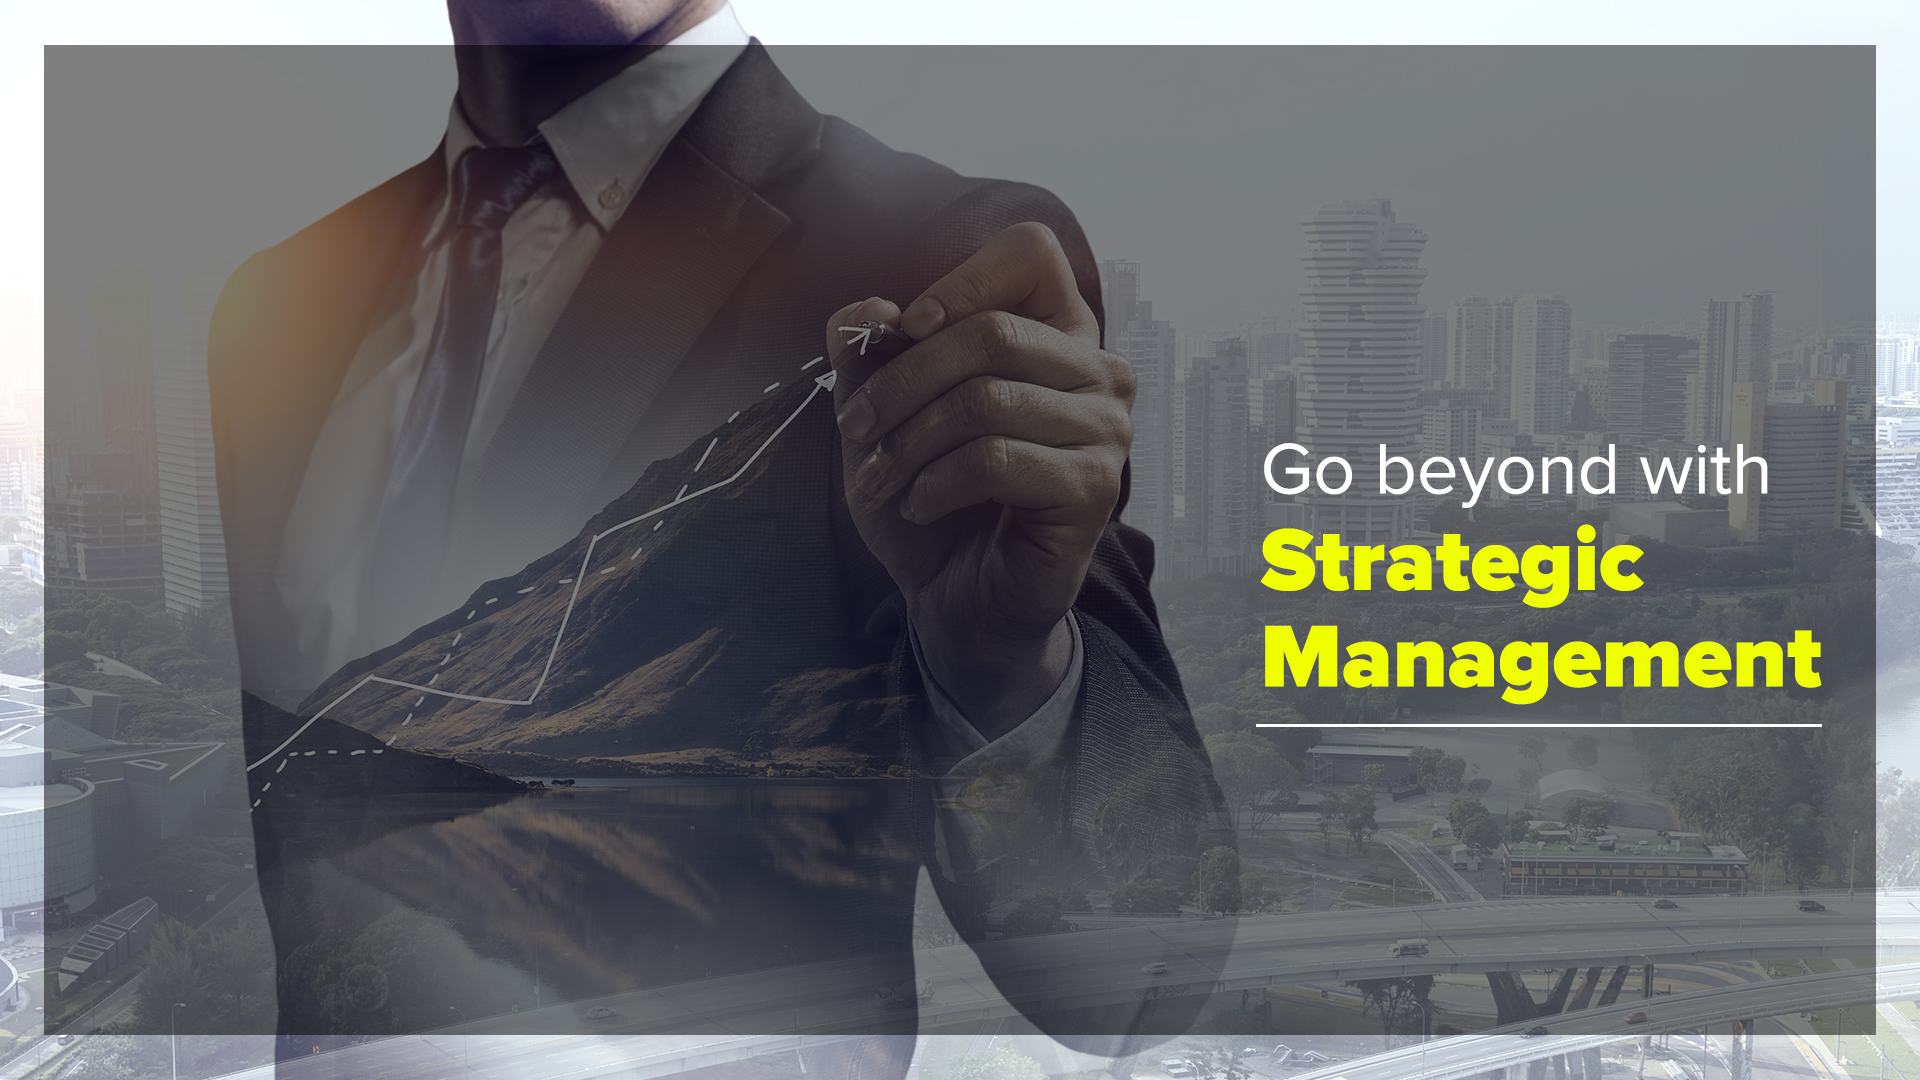 Go beyond with Strategic Management